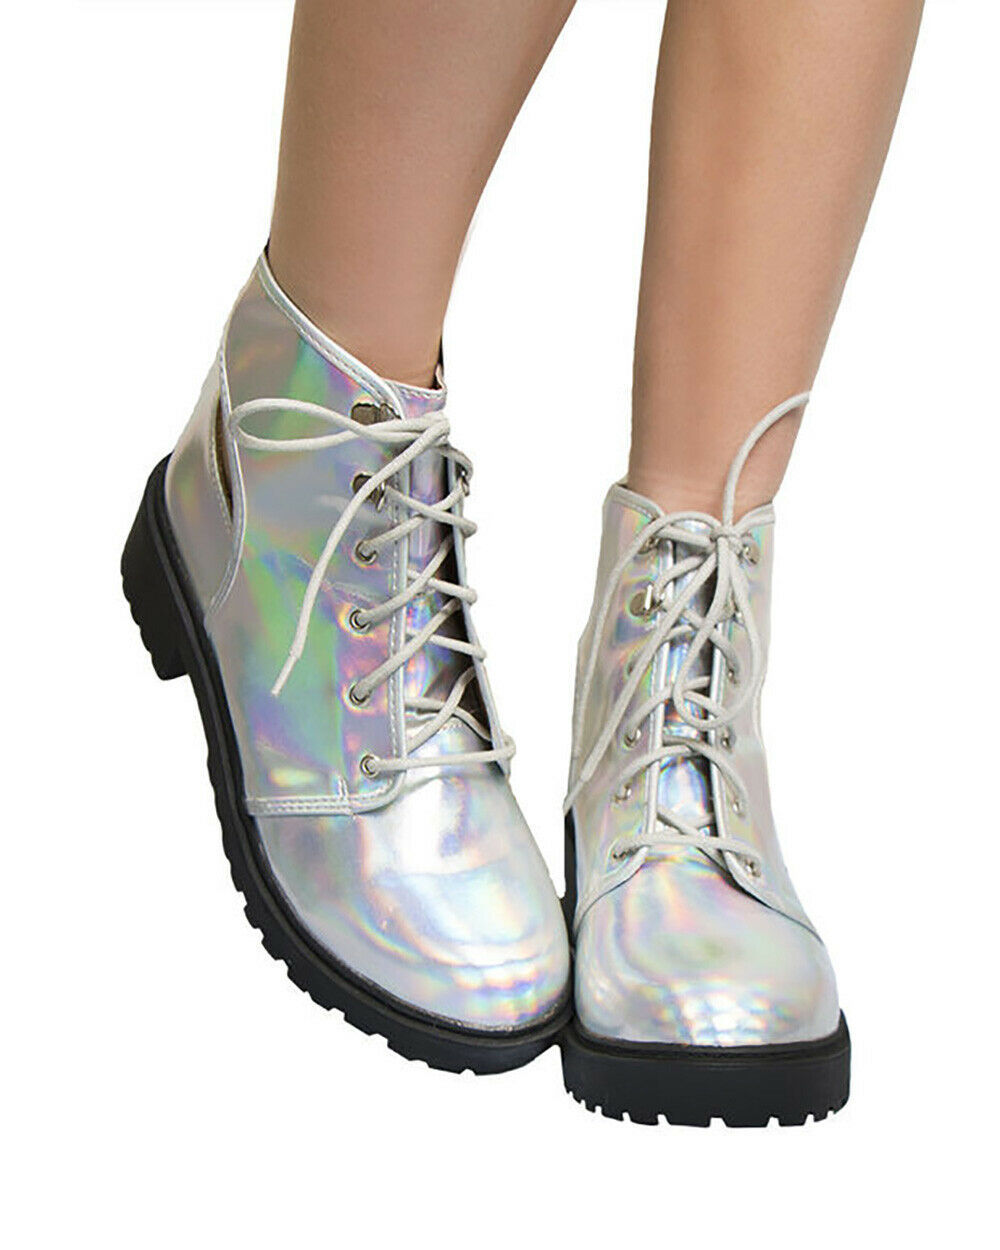 Qupid Valiant-03A Slingback Cut Out Lace-Up Booties, Silver Holographic, US 6 - $34.64